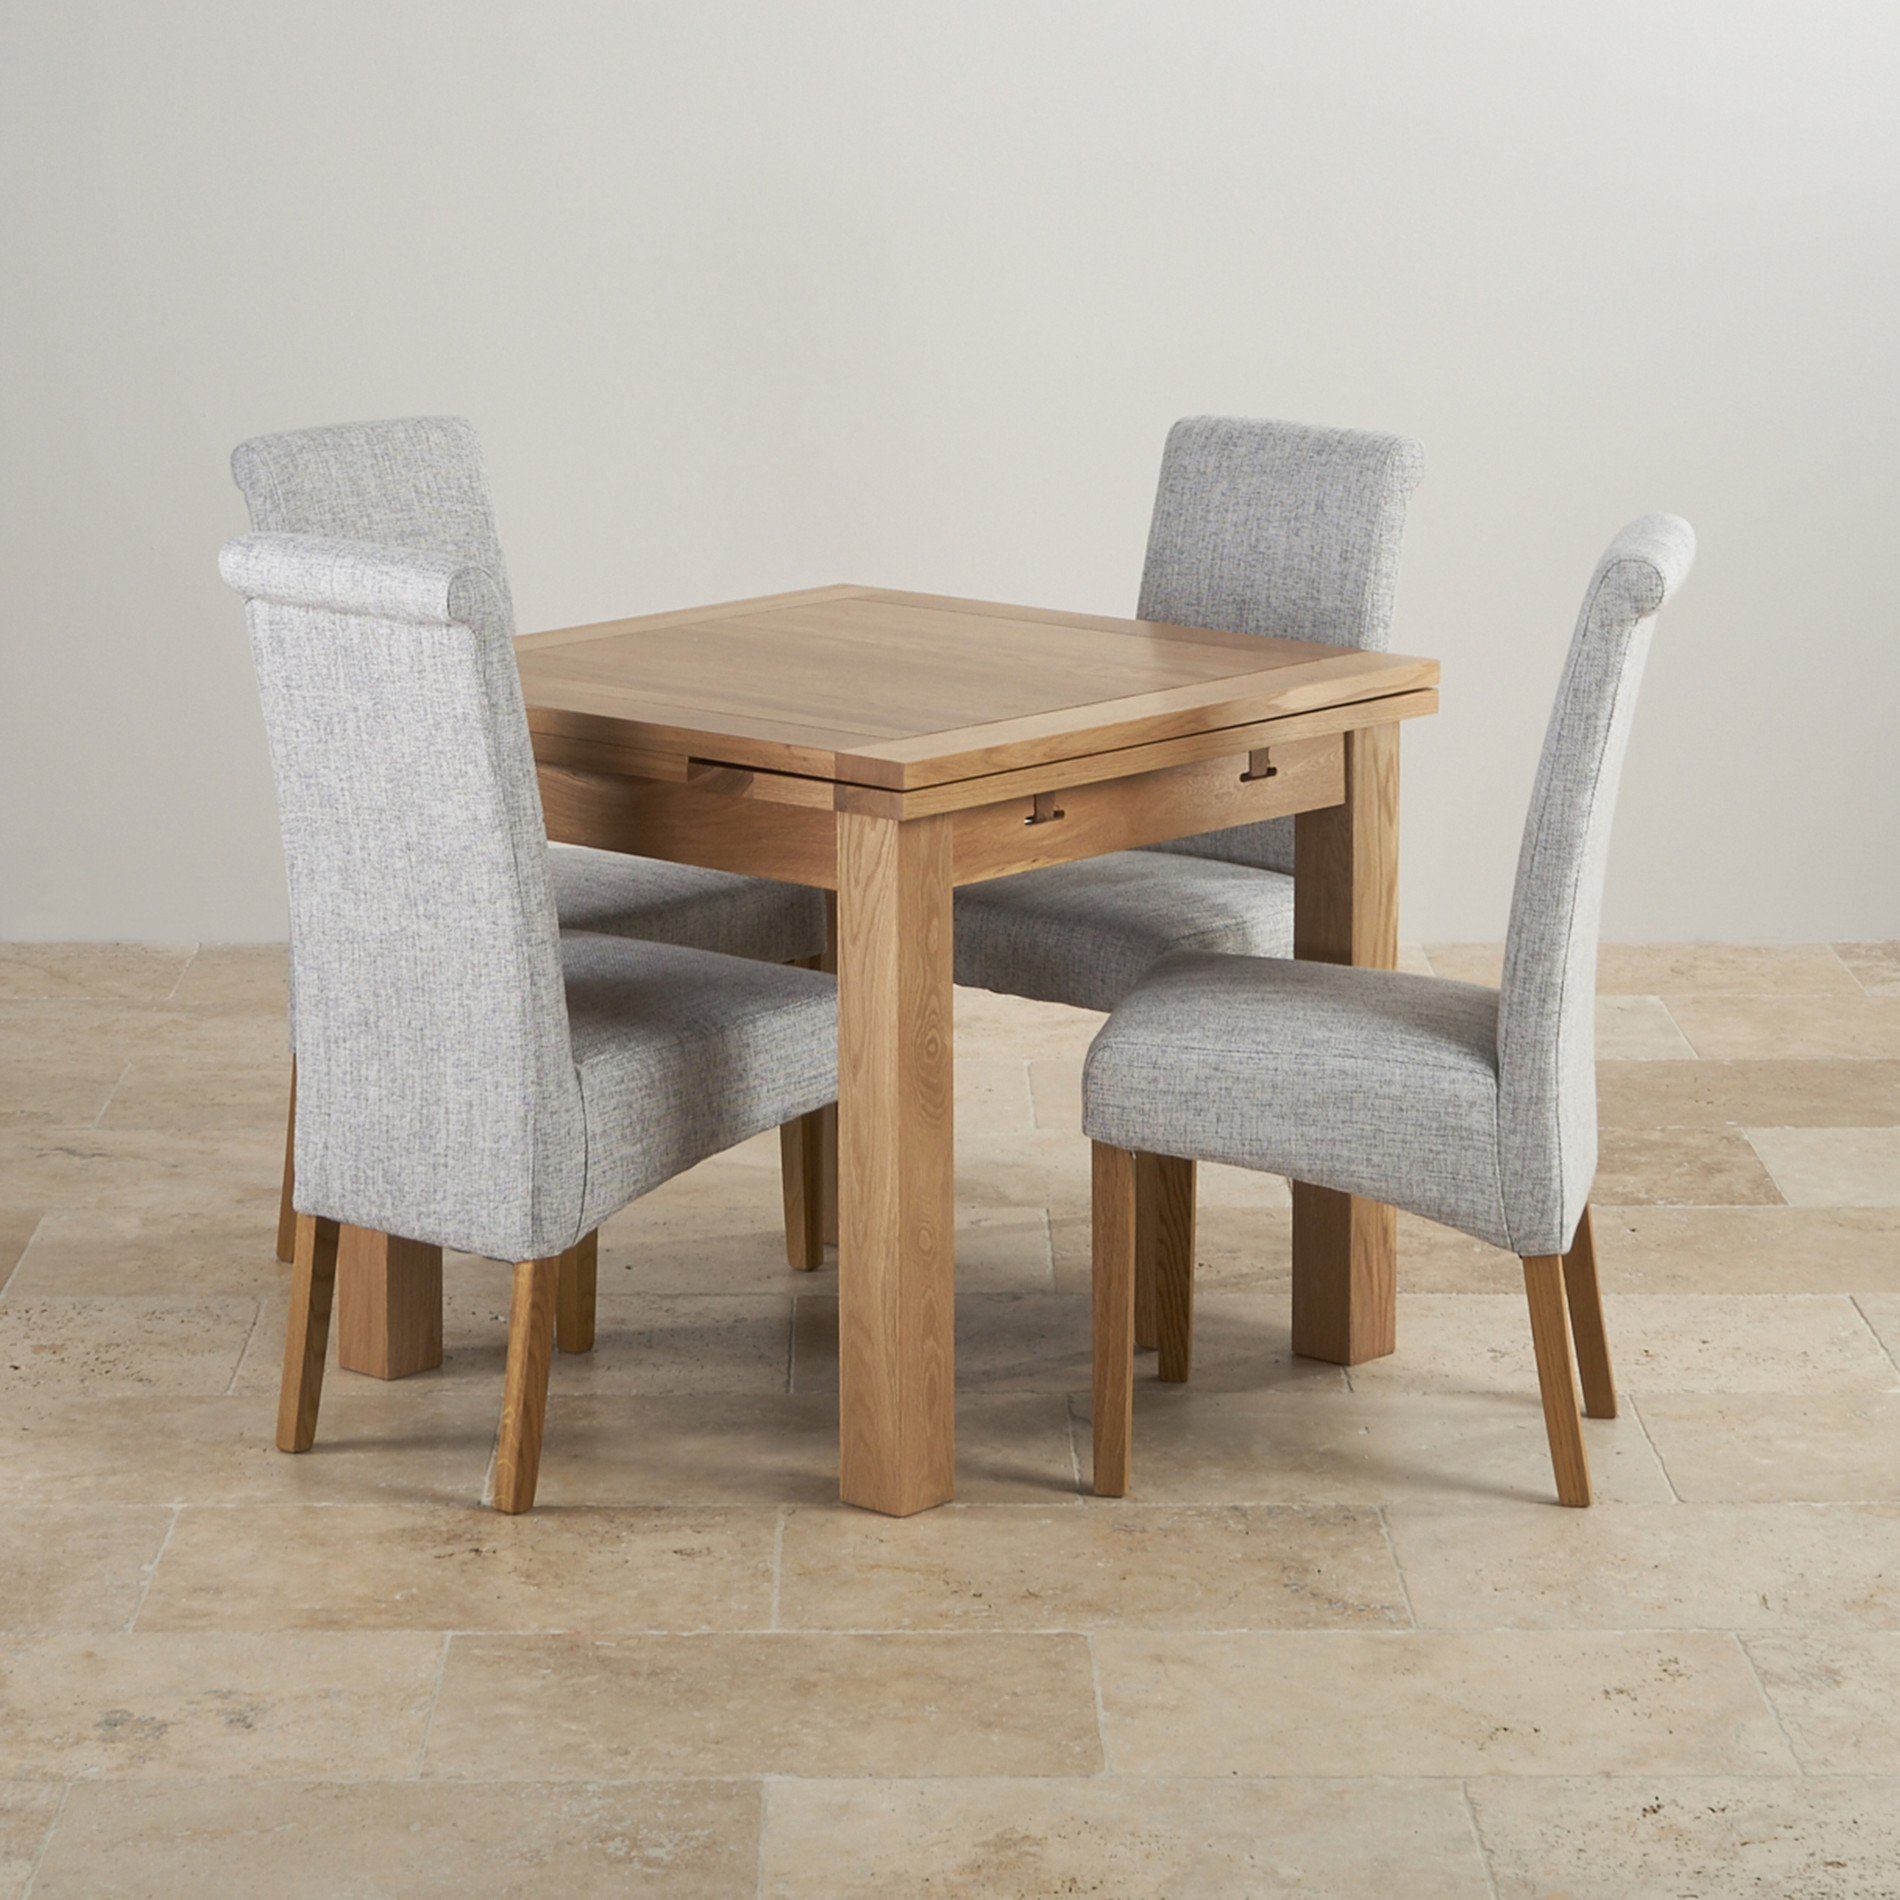 Dining Chairs And Tables Images Dining Table Ideas : dorset natural solid oak dining set 3ft extending table with 4 scroll back plain grey fabric chairs 56f29f8d2d165 from sorahana.info size 1900 x 1900 jpeg 561kB